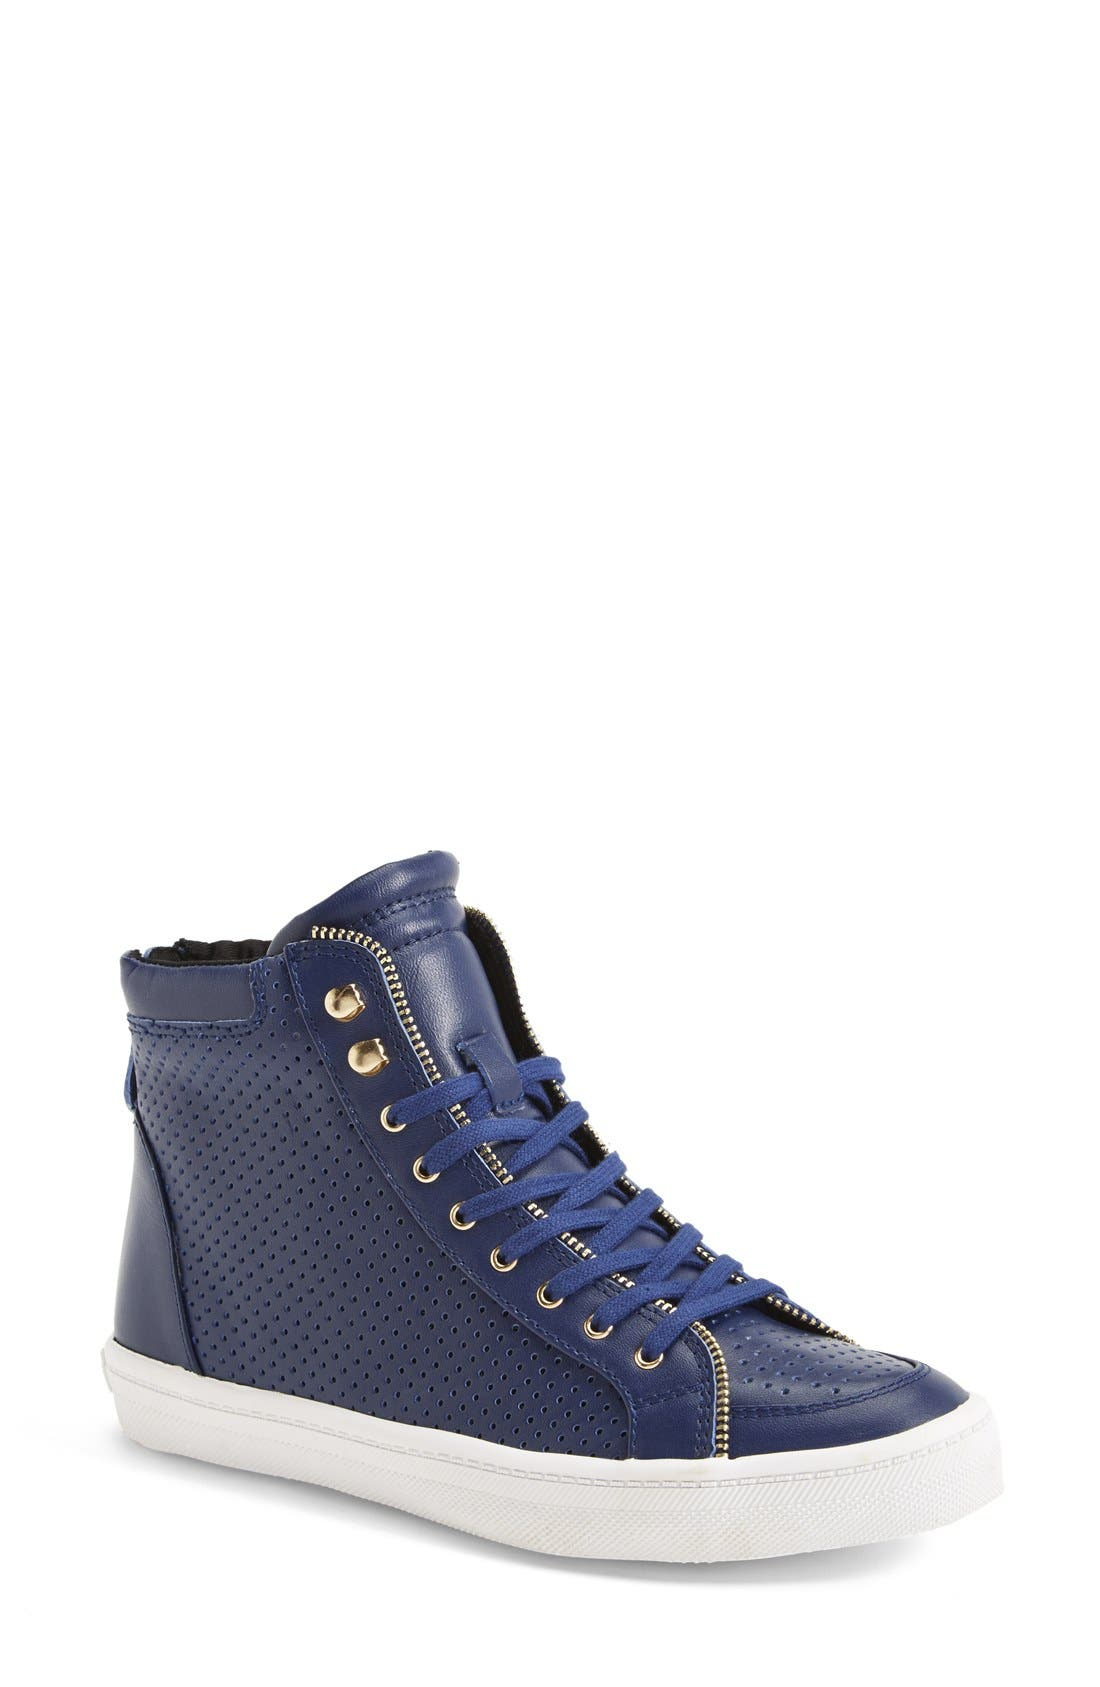 Main Image - Rebecca Minkoff 'Sandi' Perforated & Quilted Leather High Top Sneaker (Women)